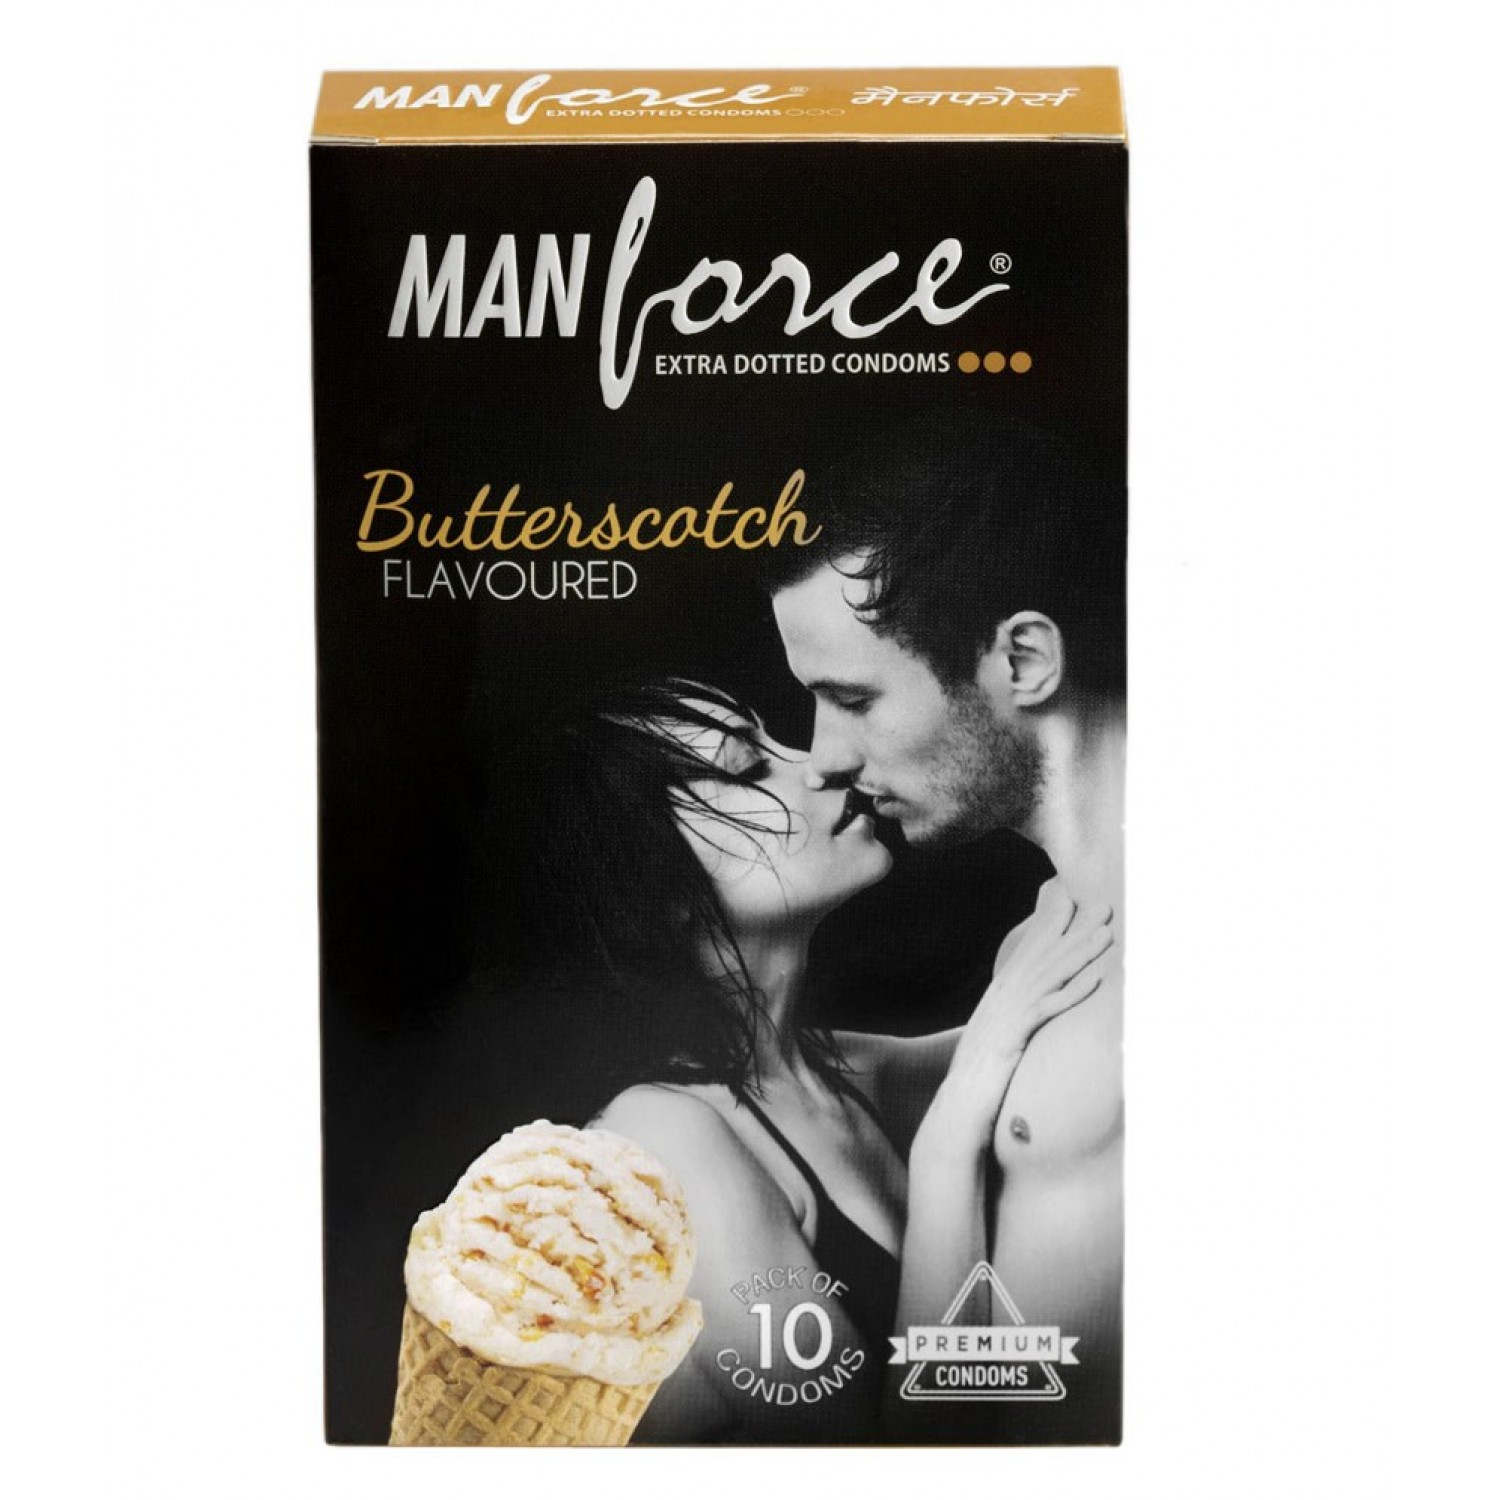 Manforce Butterscotch Flavoured Condoms- 2* (Pack of 10)